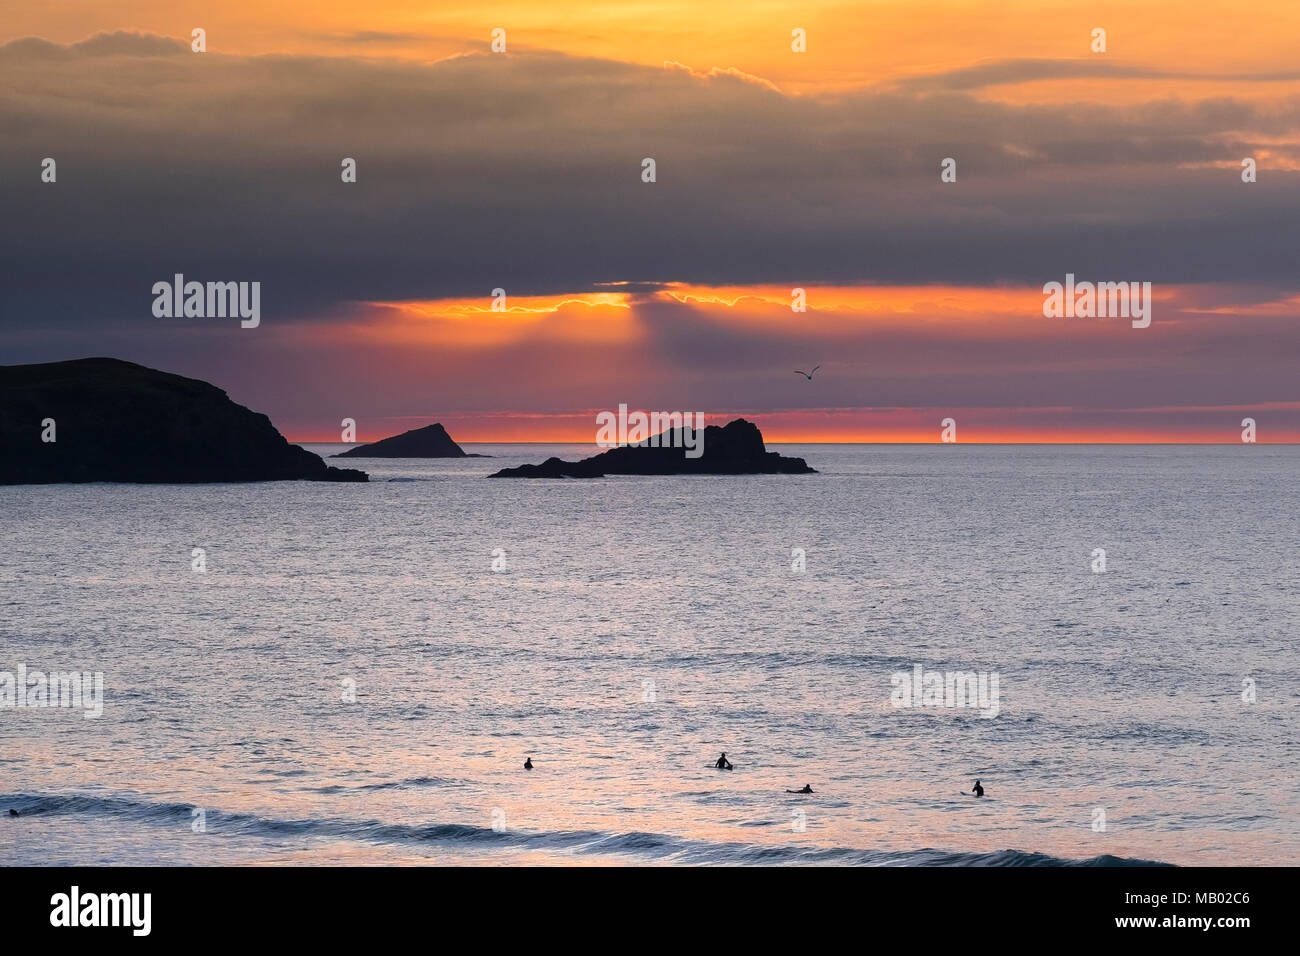 The Goose and The Chick small islands off East Pentire Headland are seeen in silhouette as the sun sets over Fistral in Cornwall. Stock Photo